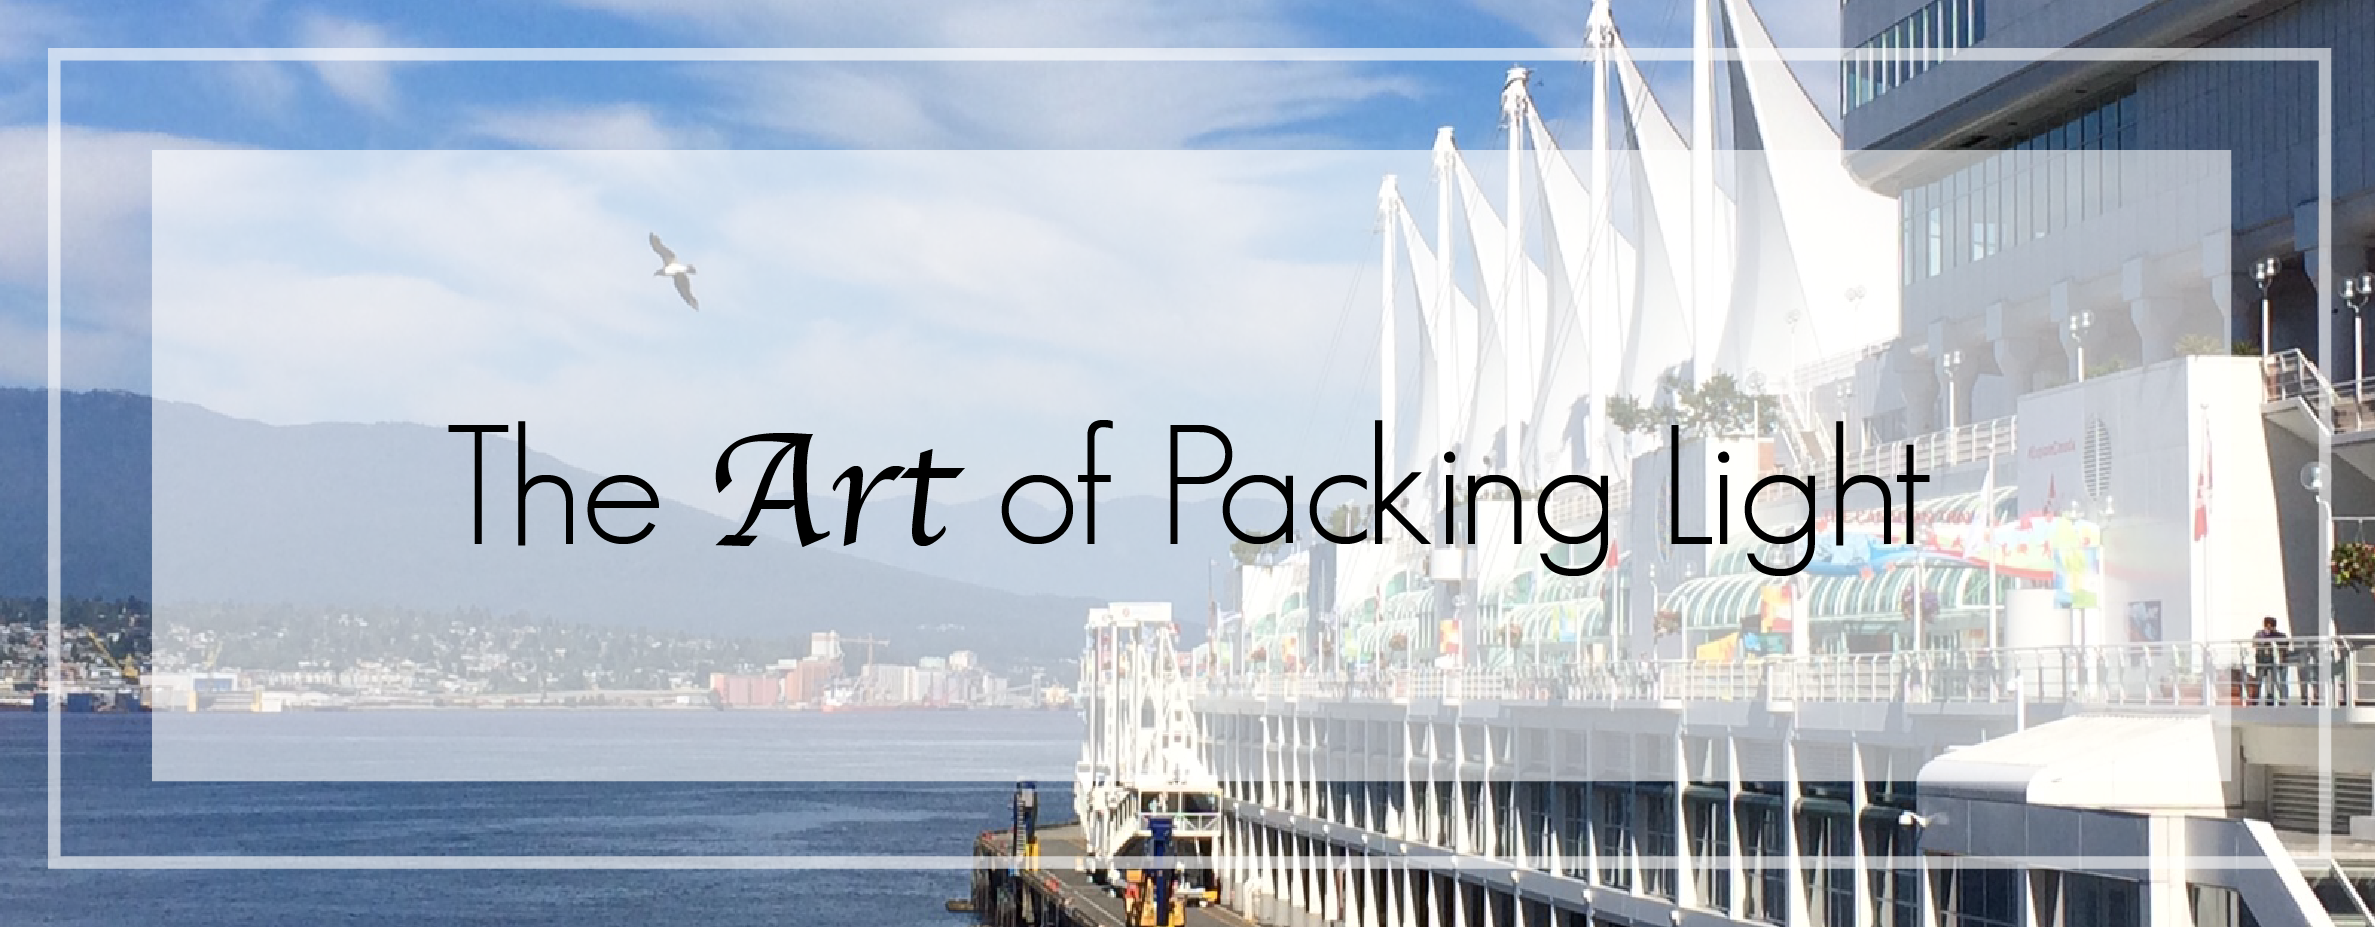 The Art of Packing light 01